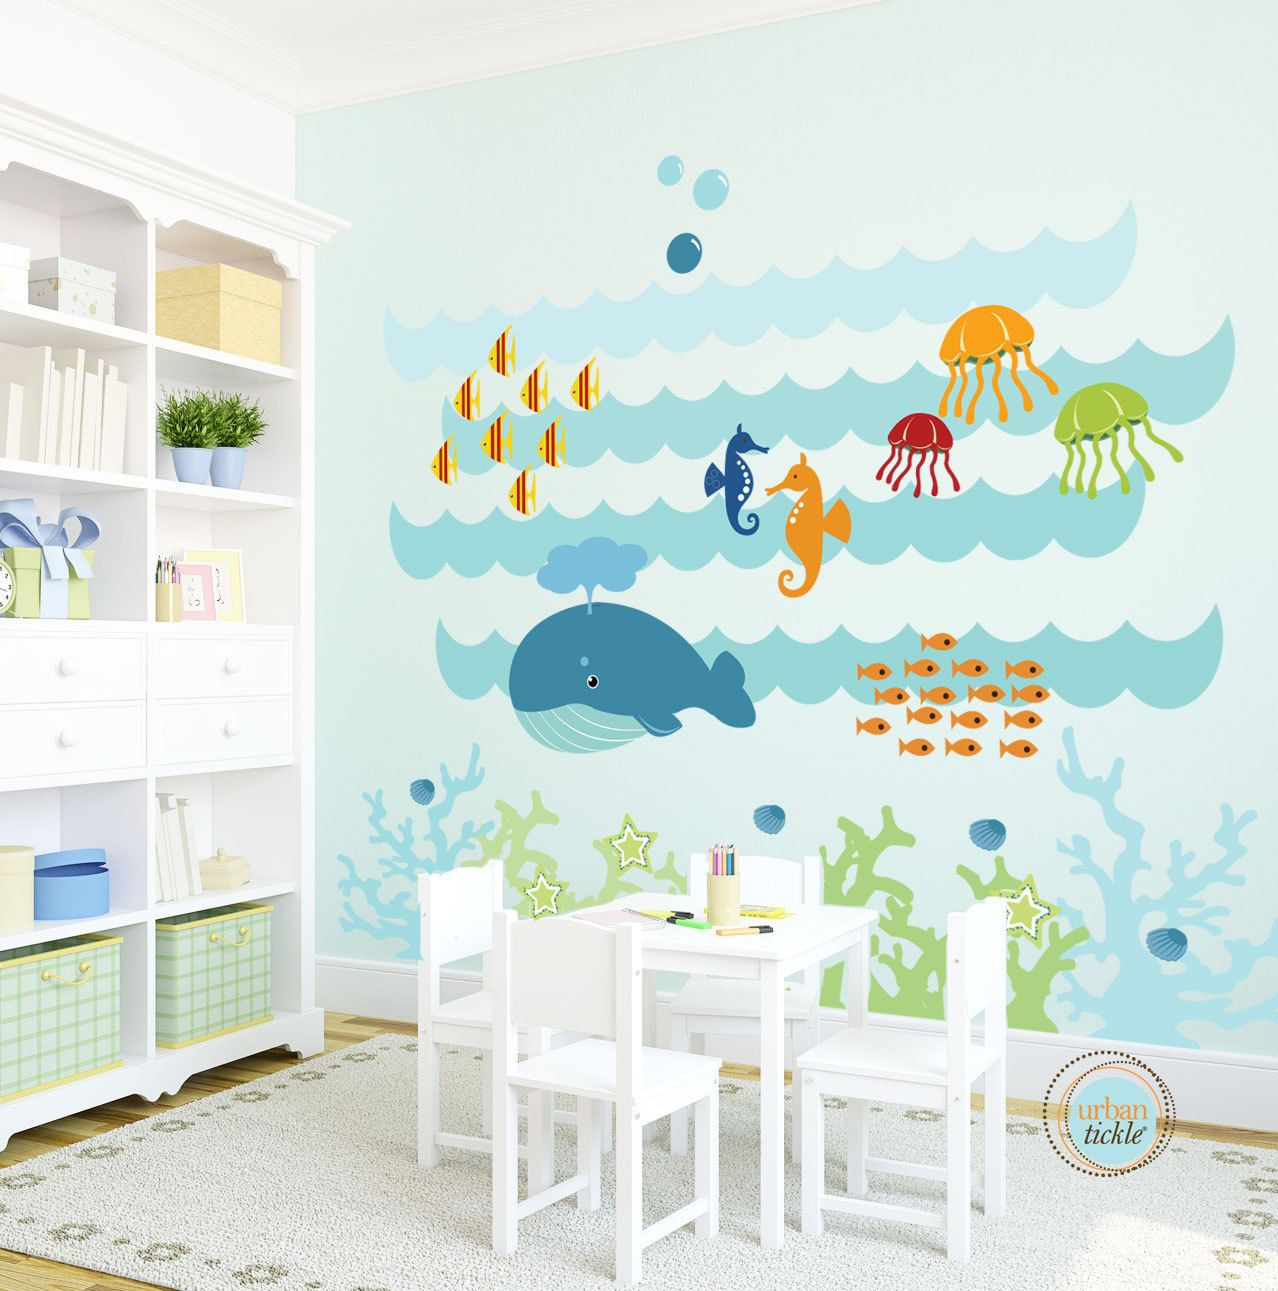 Kids wall decal under the sea extra large nursery by urbantickle kids wall decal under the sea extra large nursery by urbantickle amipublicfo Image collections